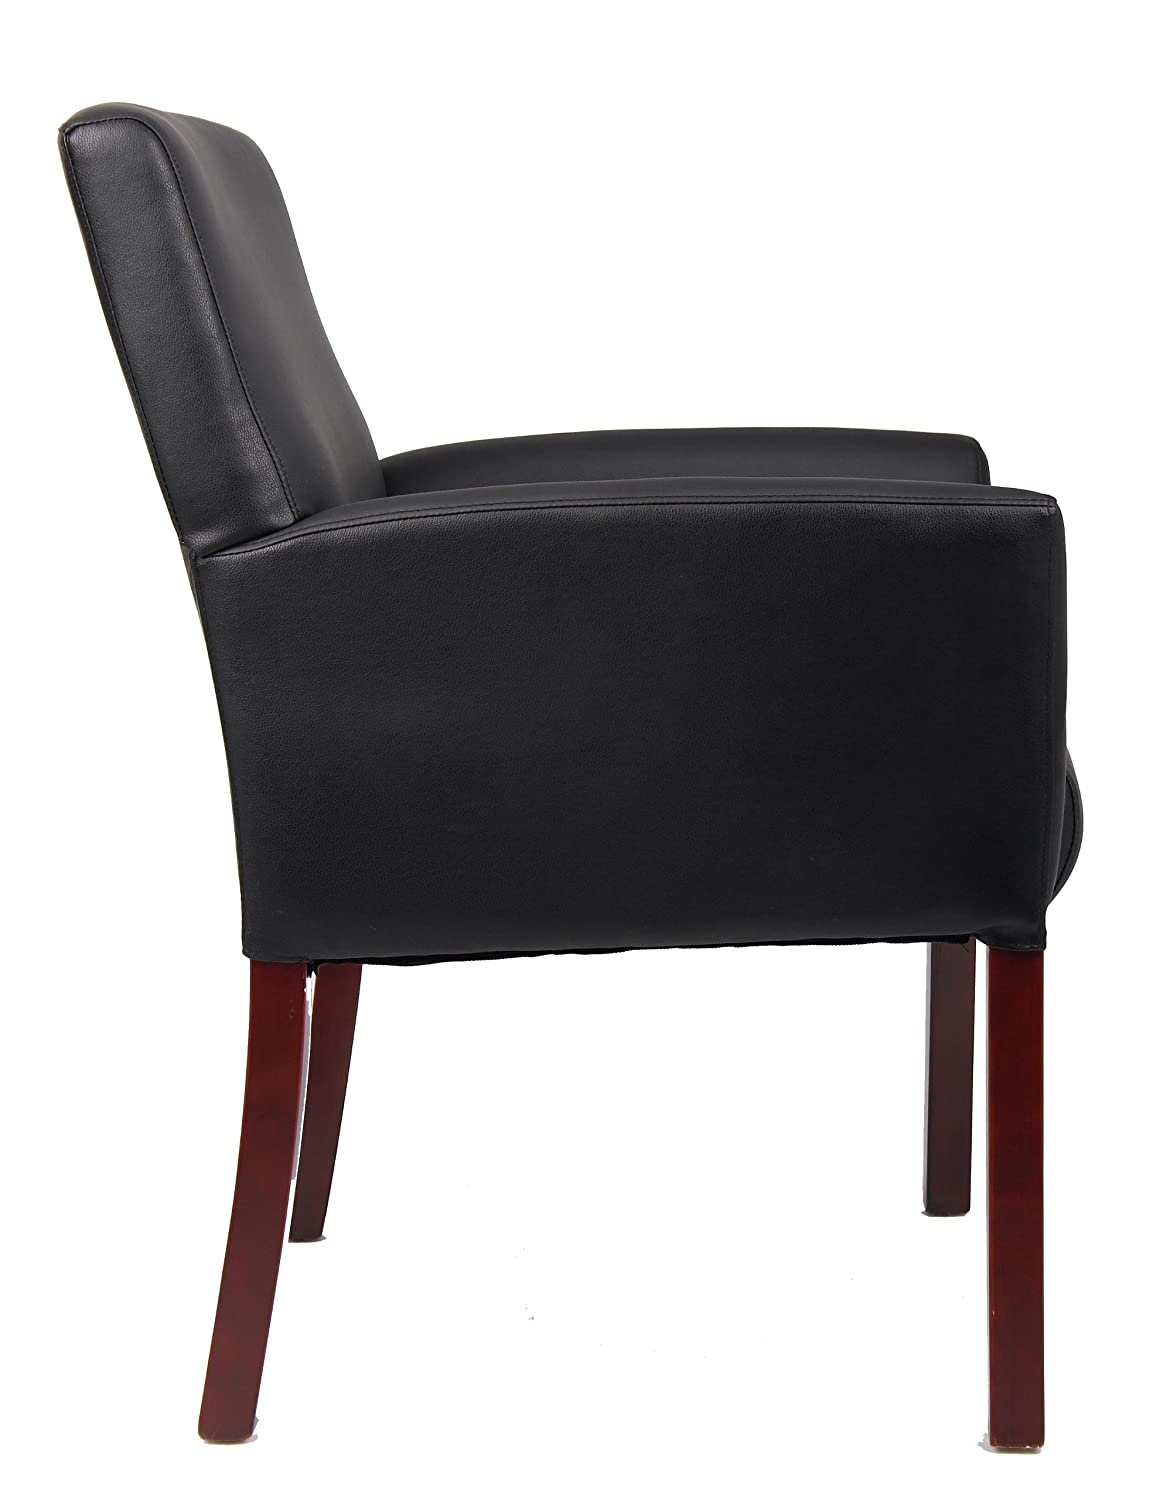 Amazon: Boss Office Products B619 Box Arm Guest Chair With Mahogany  Finish In Black: Kitchen & Dining